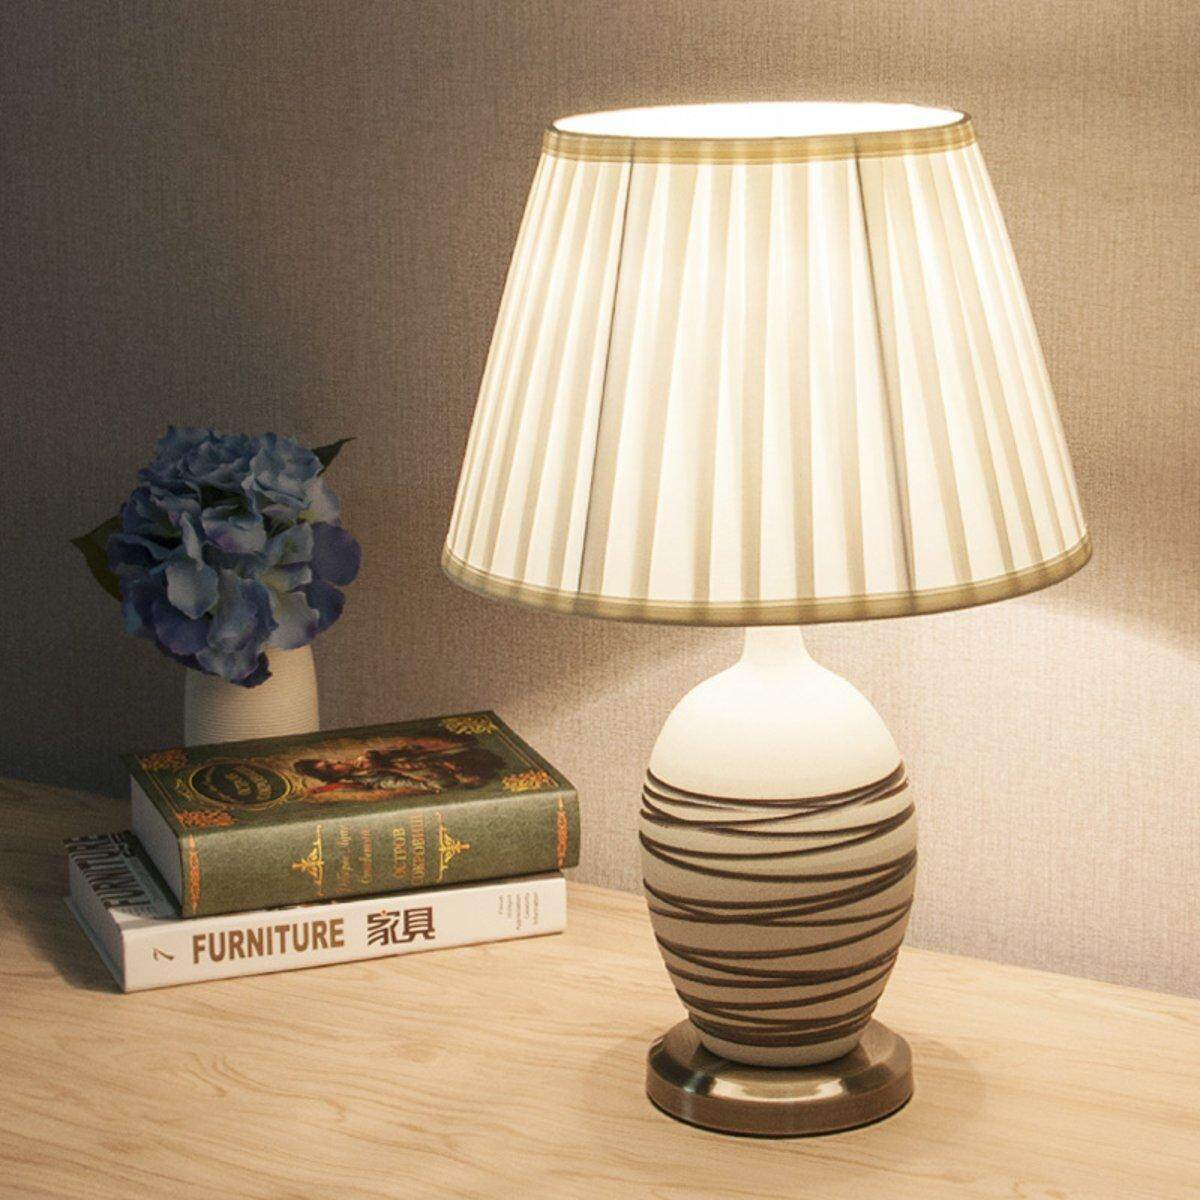 6 To 20 Fabric Box Pleat Lamp Shade Table Light Lampshade Mink Cream Ivoryr 260mm By Moonbeam.